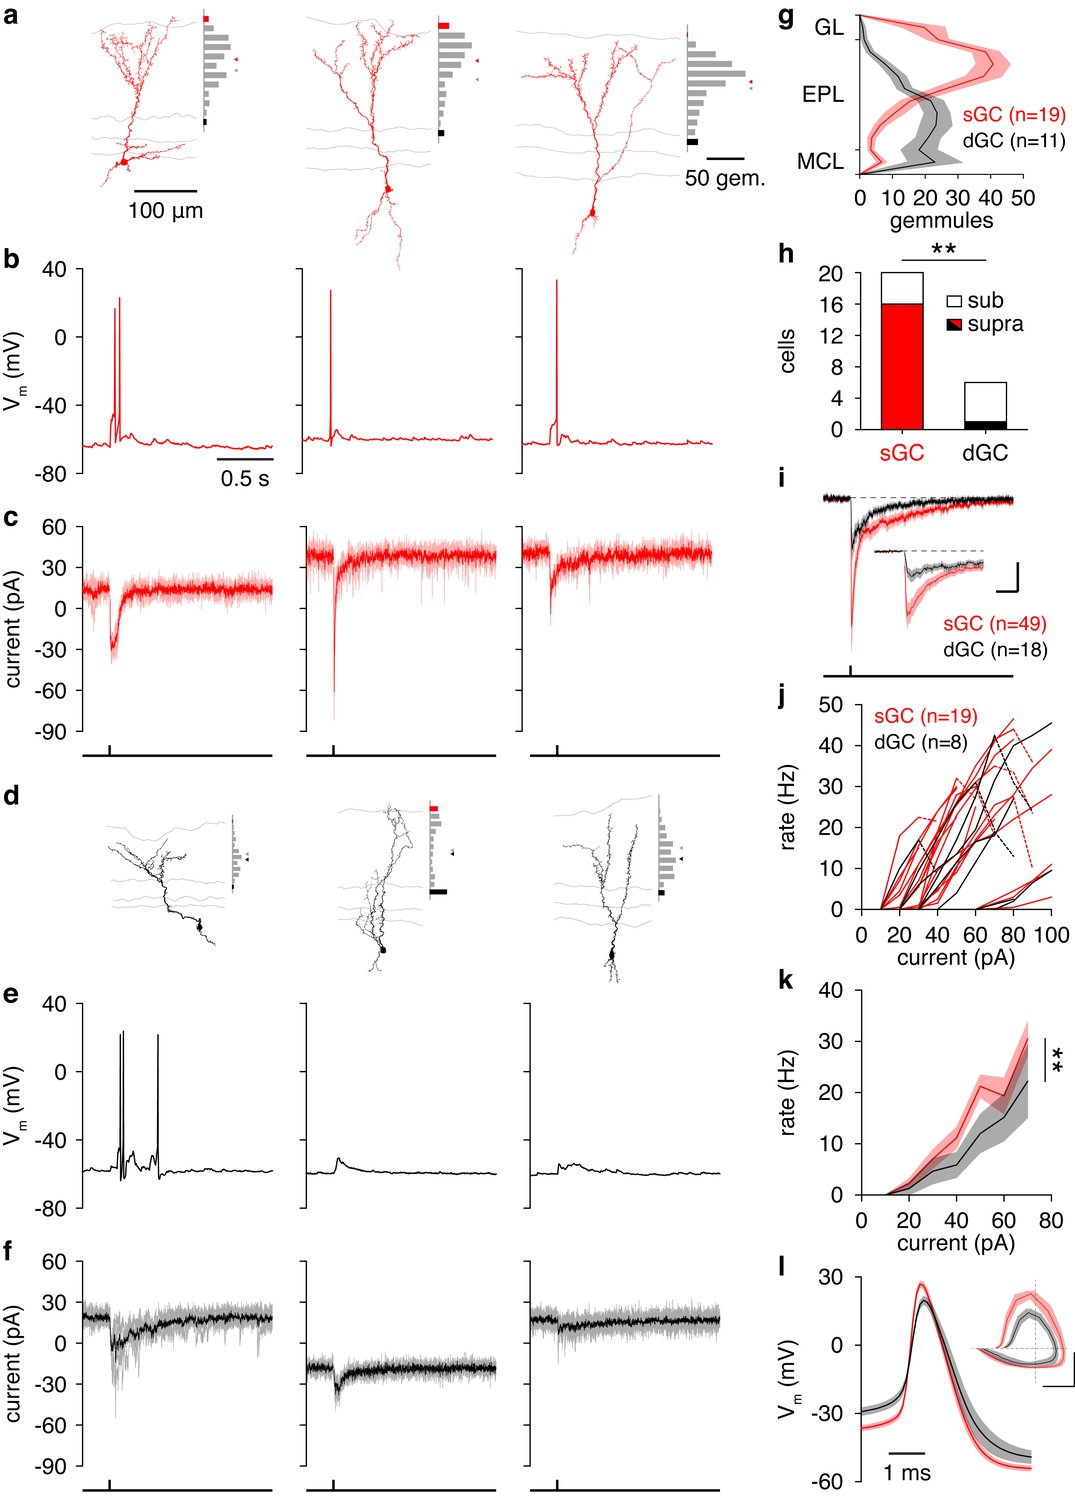 Distinct Lateral Inhibitory Circuits Drive Parallel Processing Of Drawing A Simple Circuit With Bulb Cell And The Switch Synaptic Intrinsic Differences Regulate Sgc Vs Dgc Recruitment Following Glomerular Activation